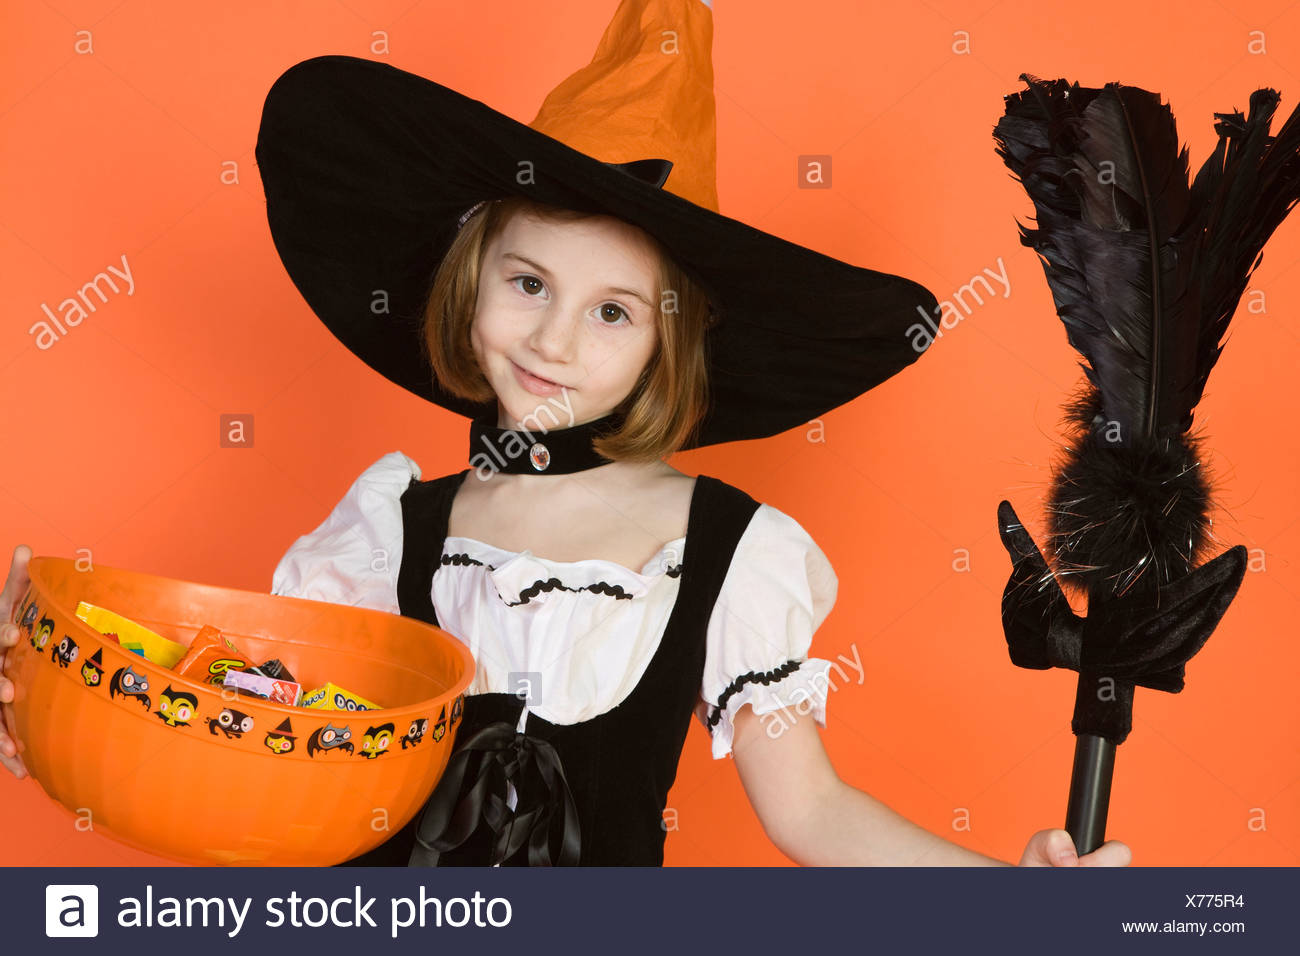 Portrait of girl (7-9) wearing witch costume for Halloween - Stock Image  sc 1 st  Alamy & Teen Witch Costume Stock Photos u0026 Teen Witch Costume Stock Images ...